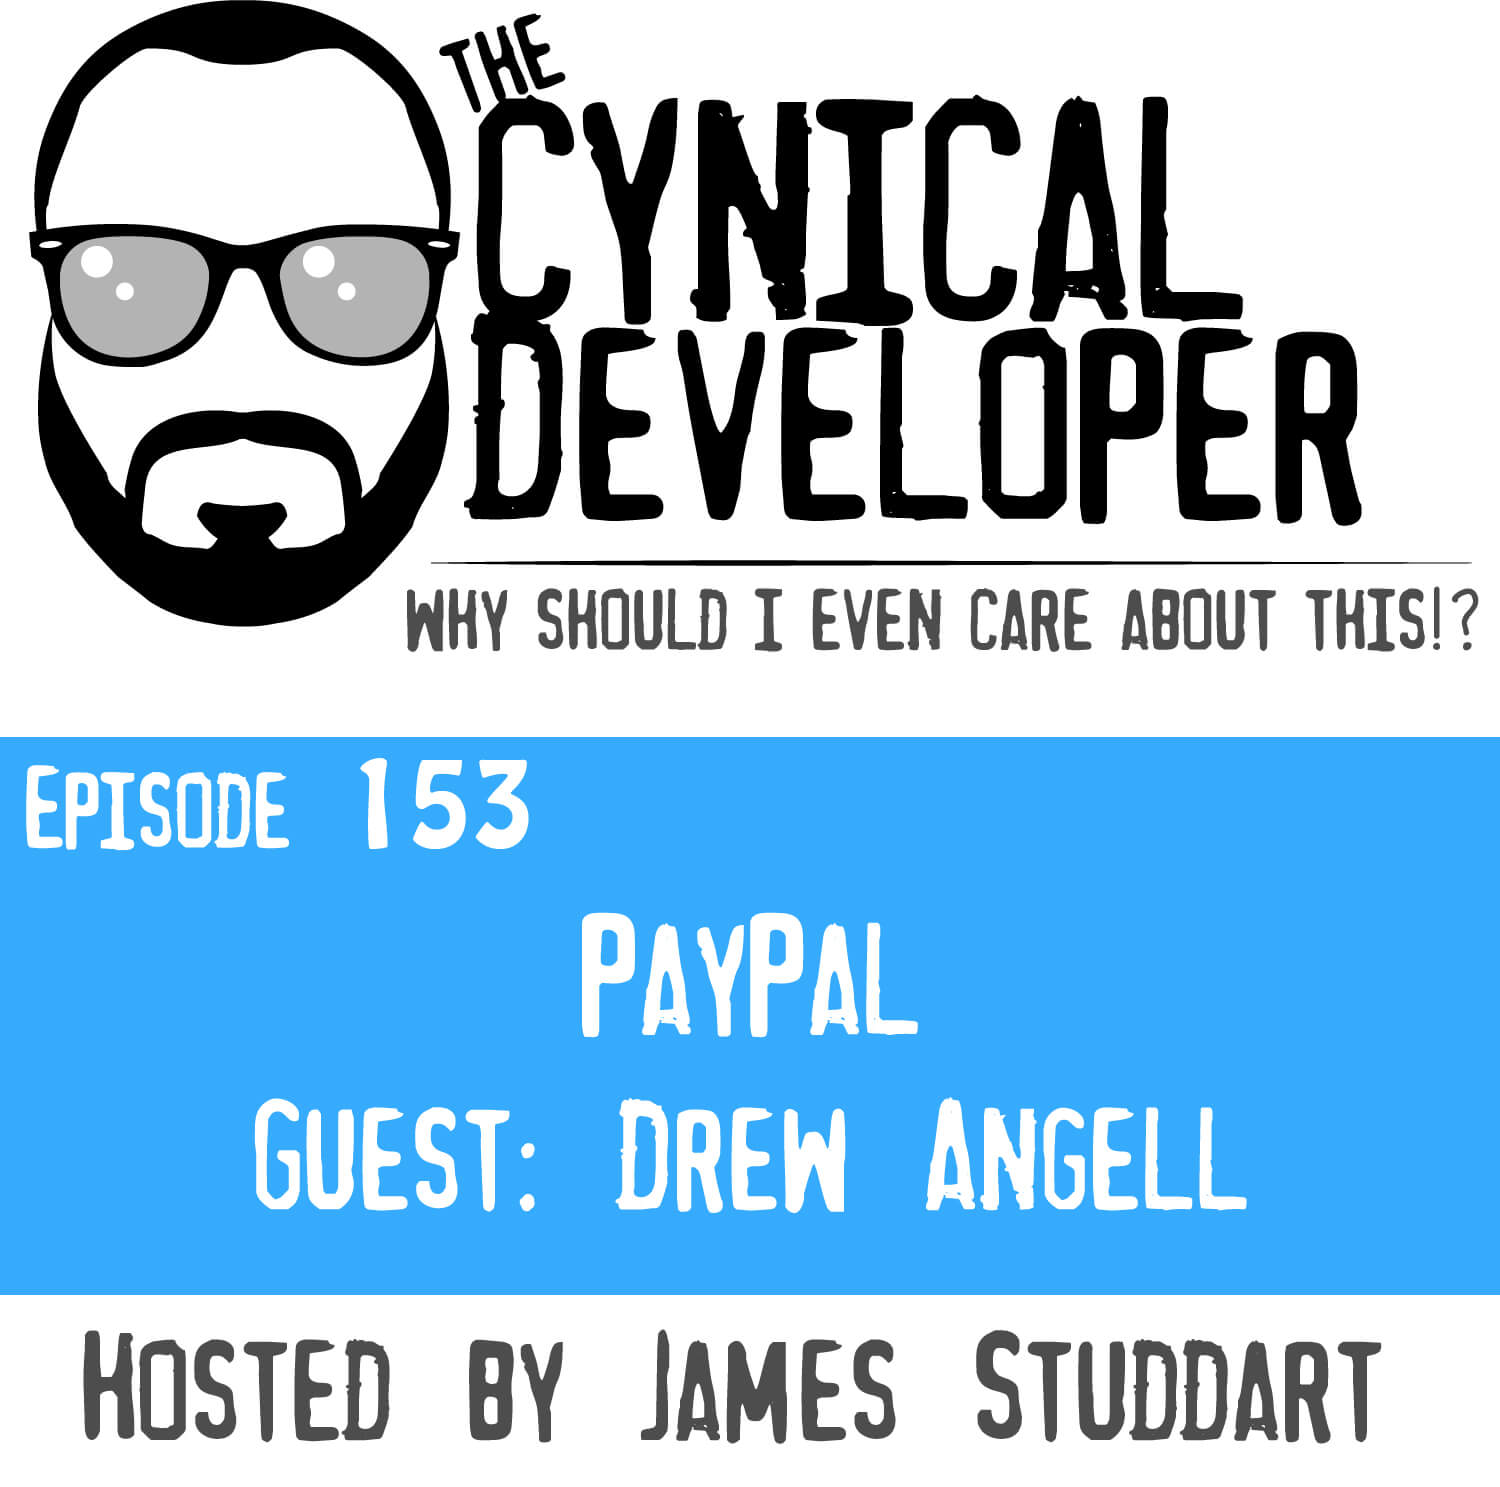 Episode 153 - PayPal